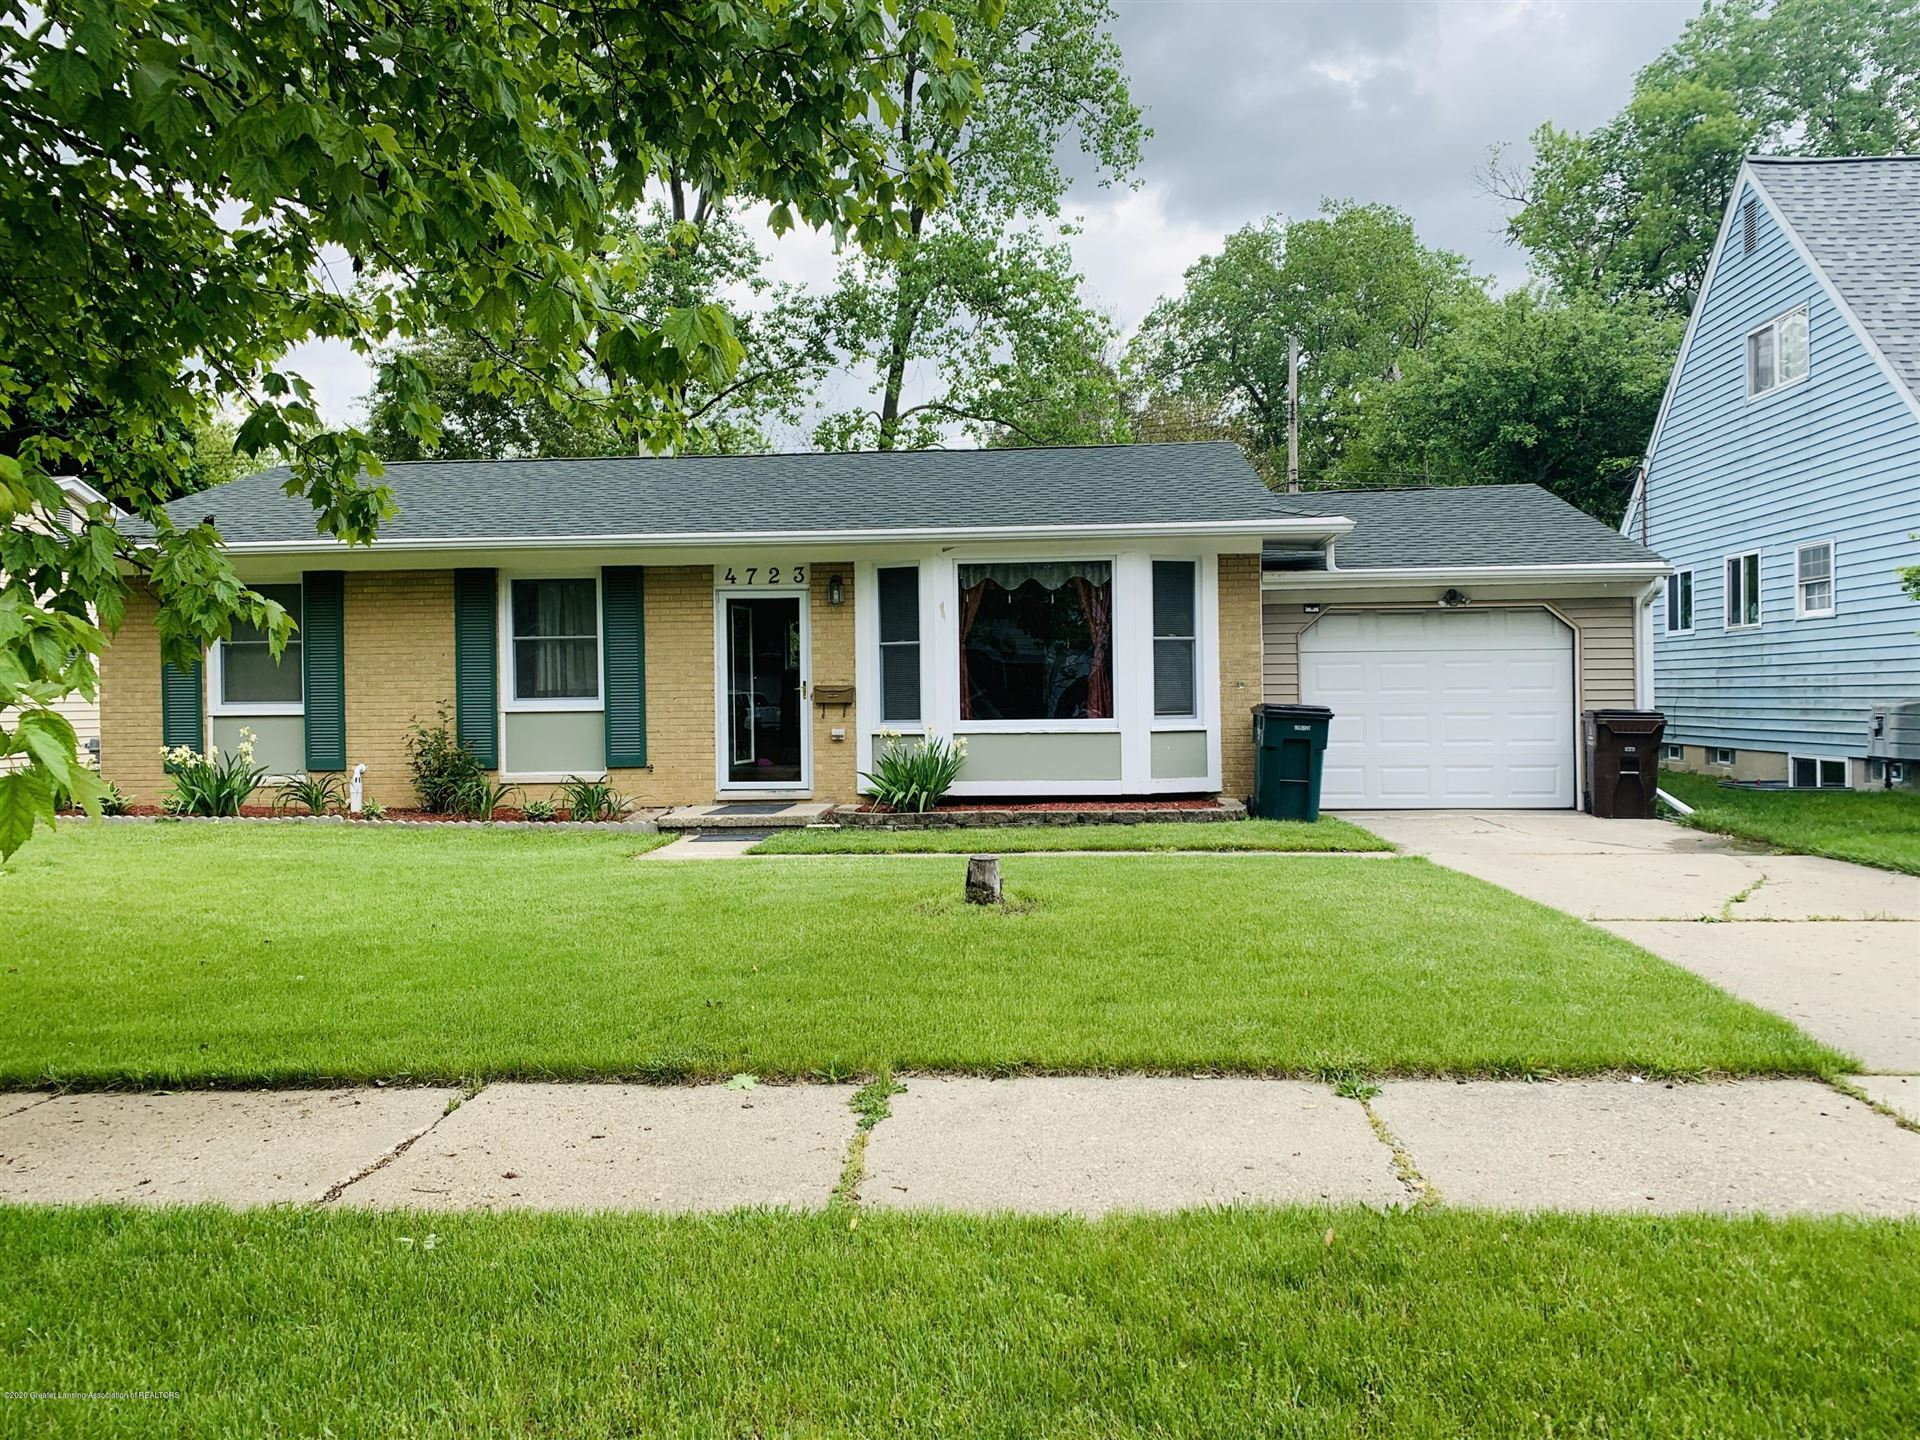 Photo for 4723 Wainwright Avenue, Lansing, MI 48911 (MLS # 246452)